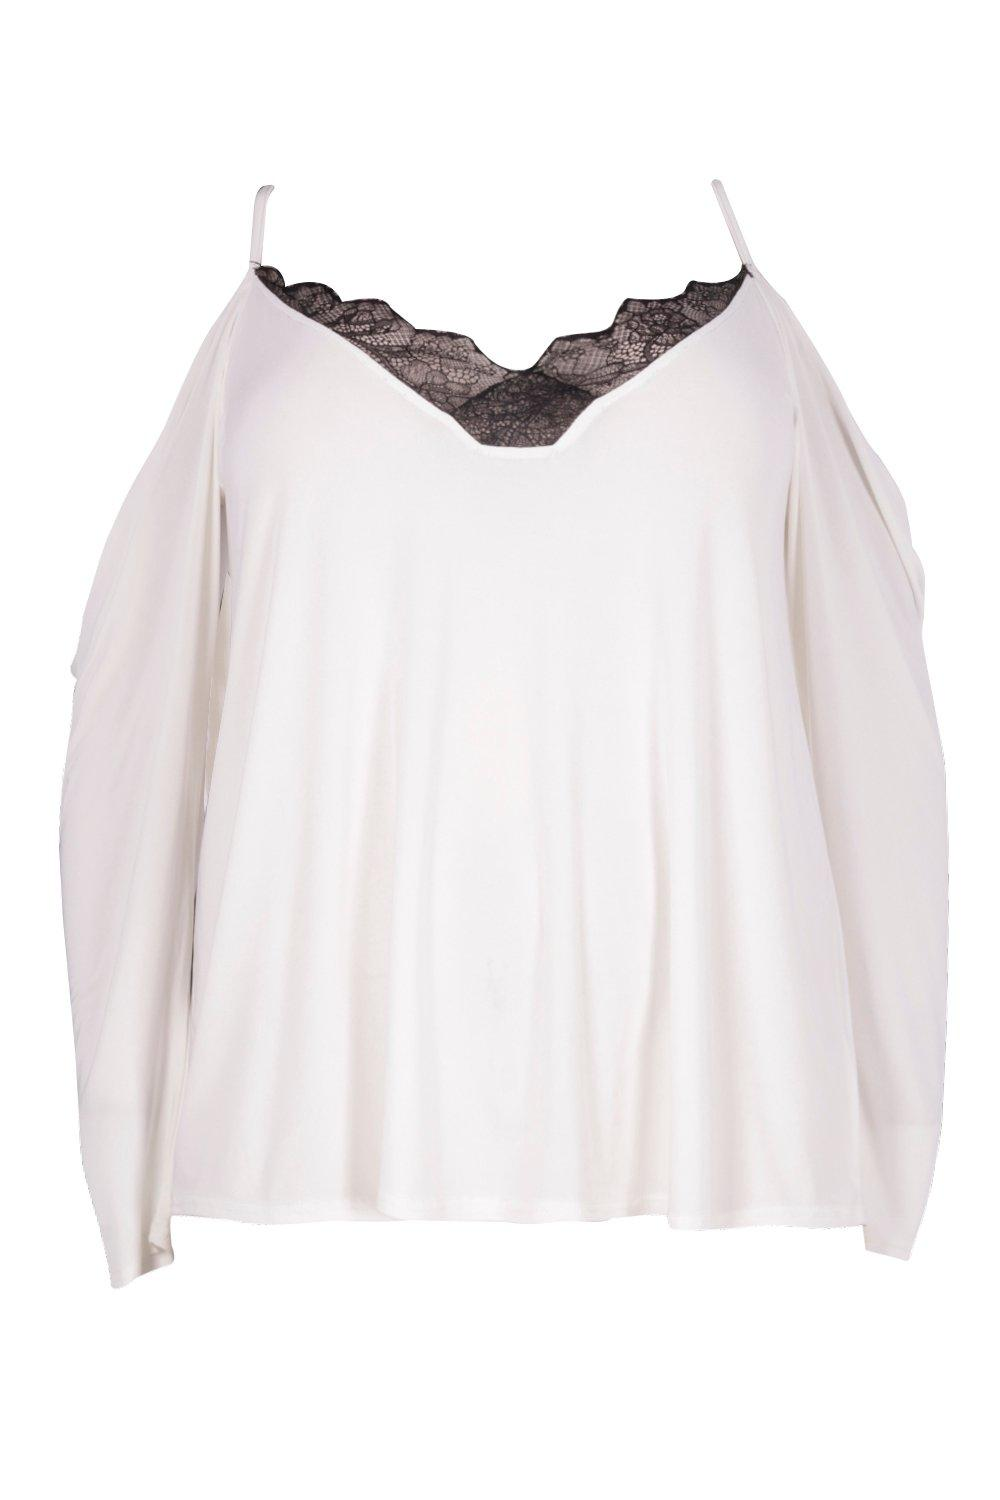 Trim Top Shoulder Neck Lace cream V Plus Cold qR45Hqw